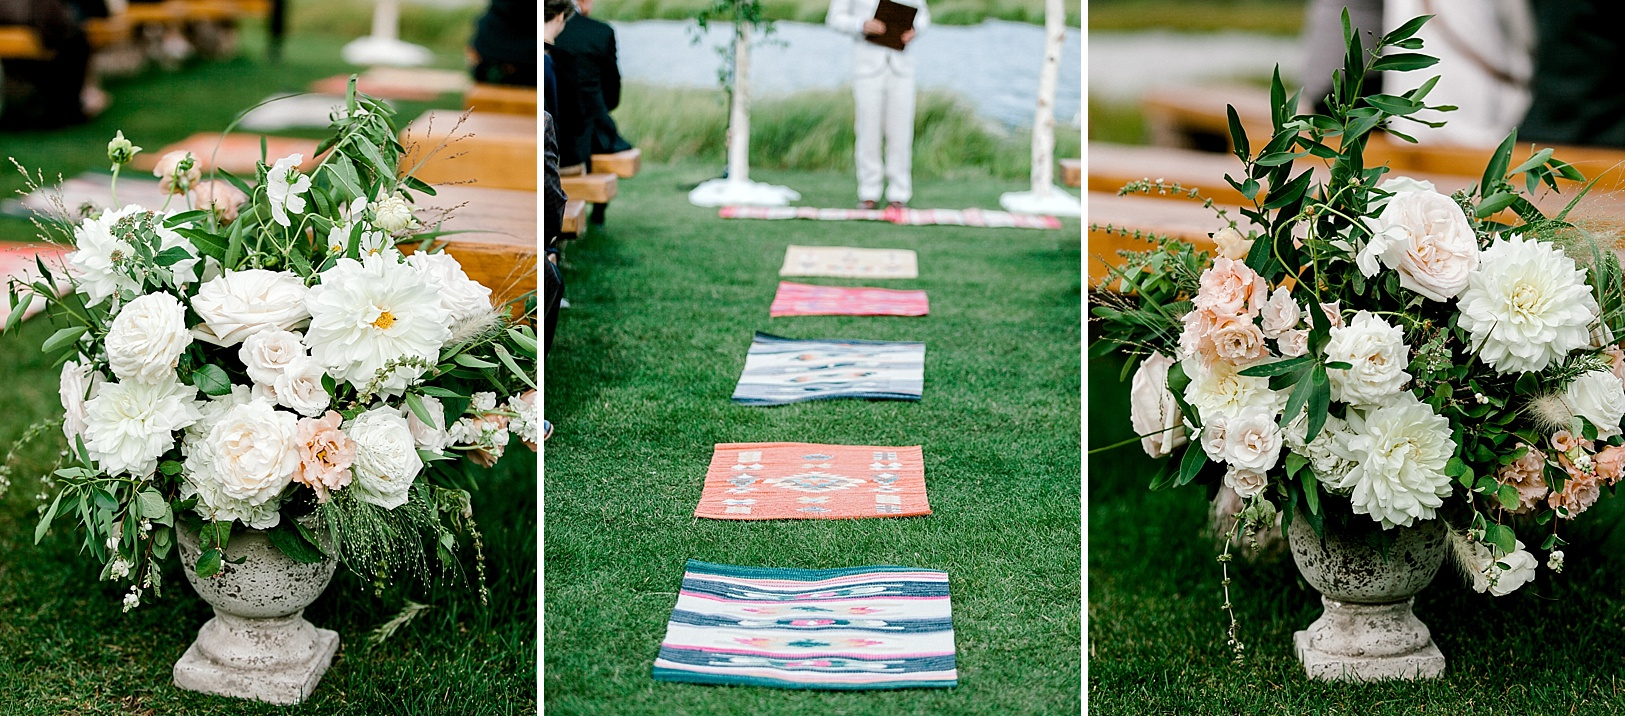 A Romantic Summer wedding at Camp Hale in Colorado with Southwestern touches by The Styled Soiree and Sara Lynn Photographic